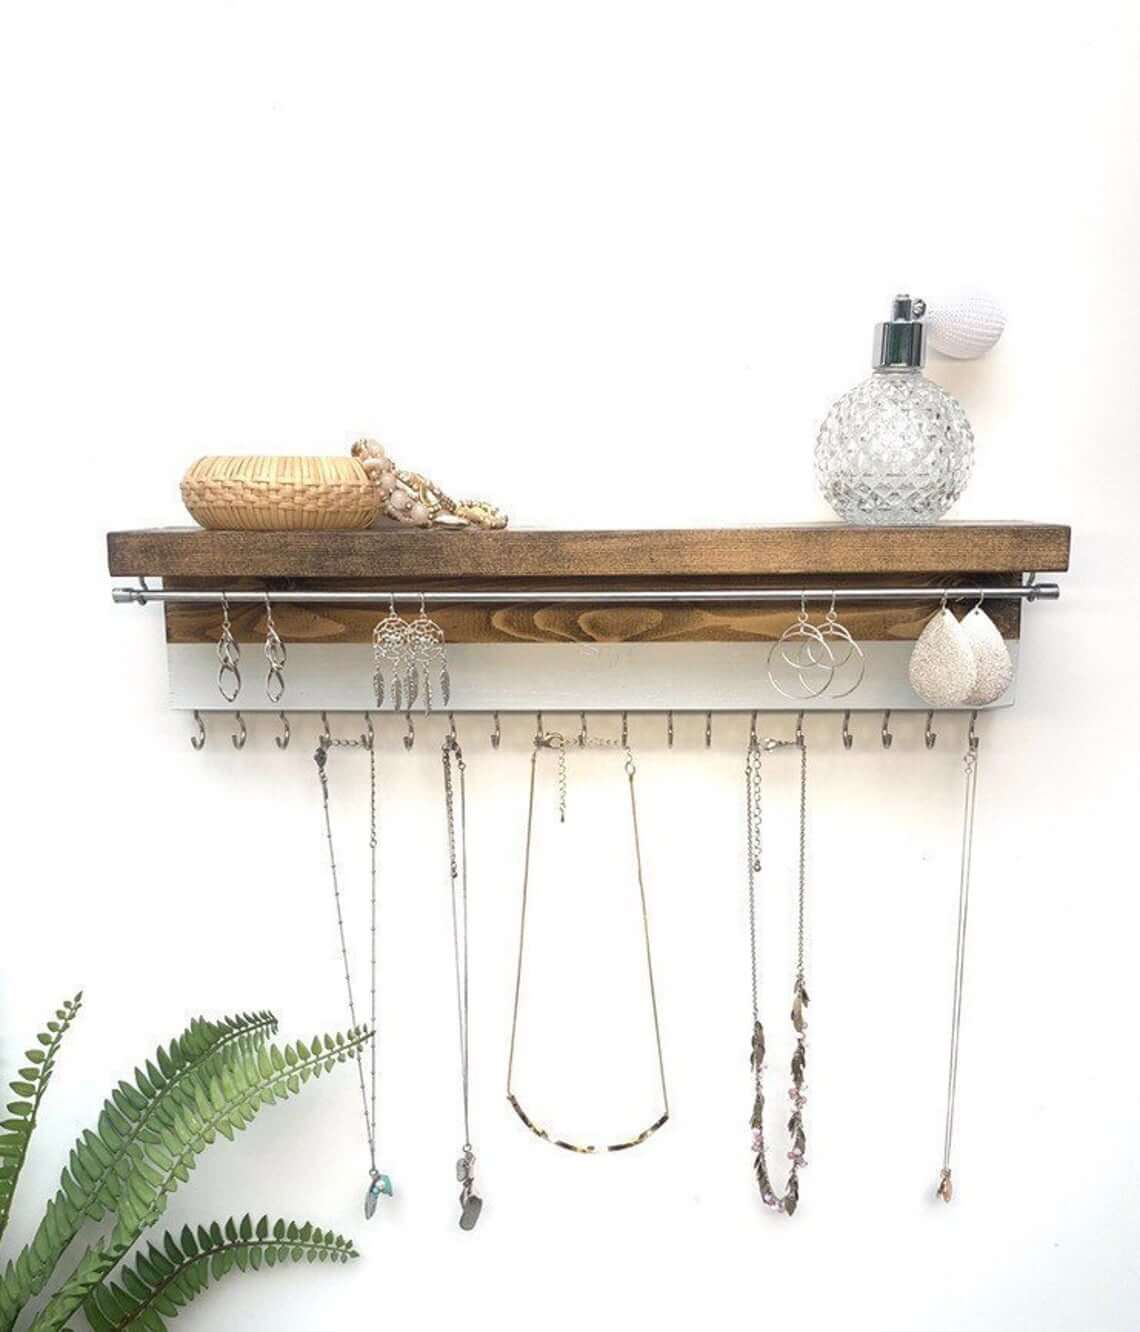 Metal and Wood Jewelry Organizer Shelf